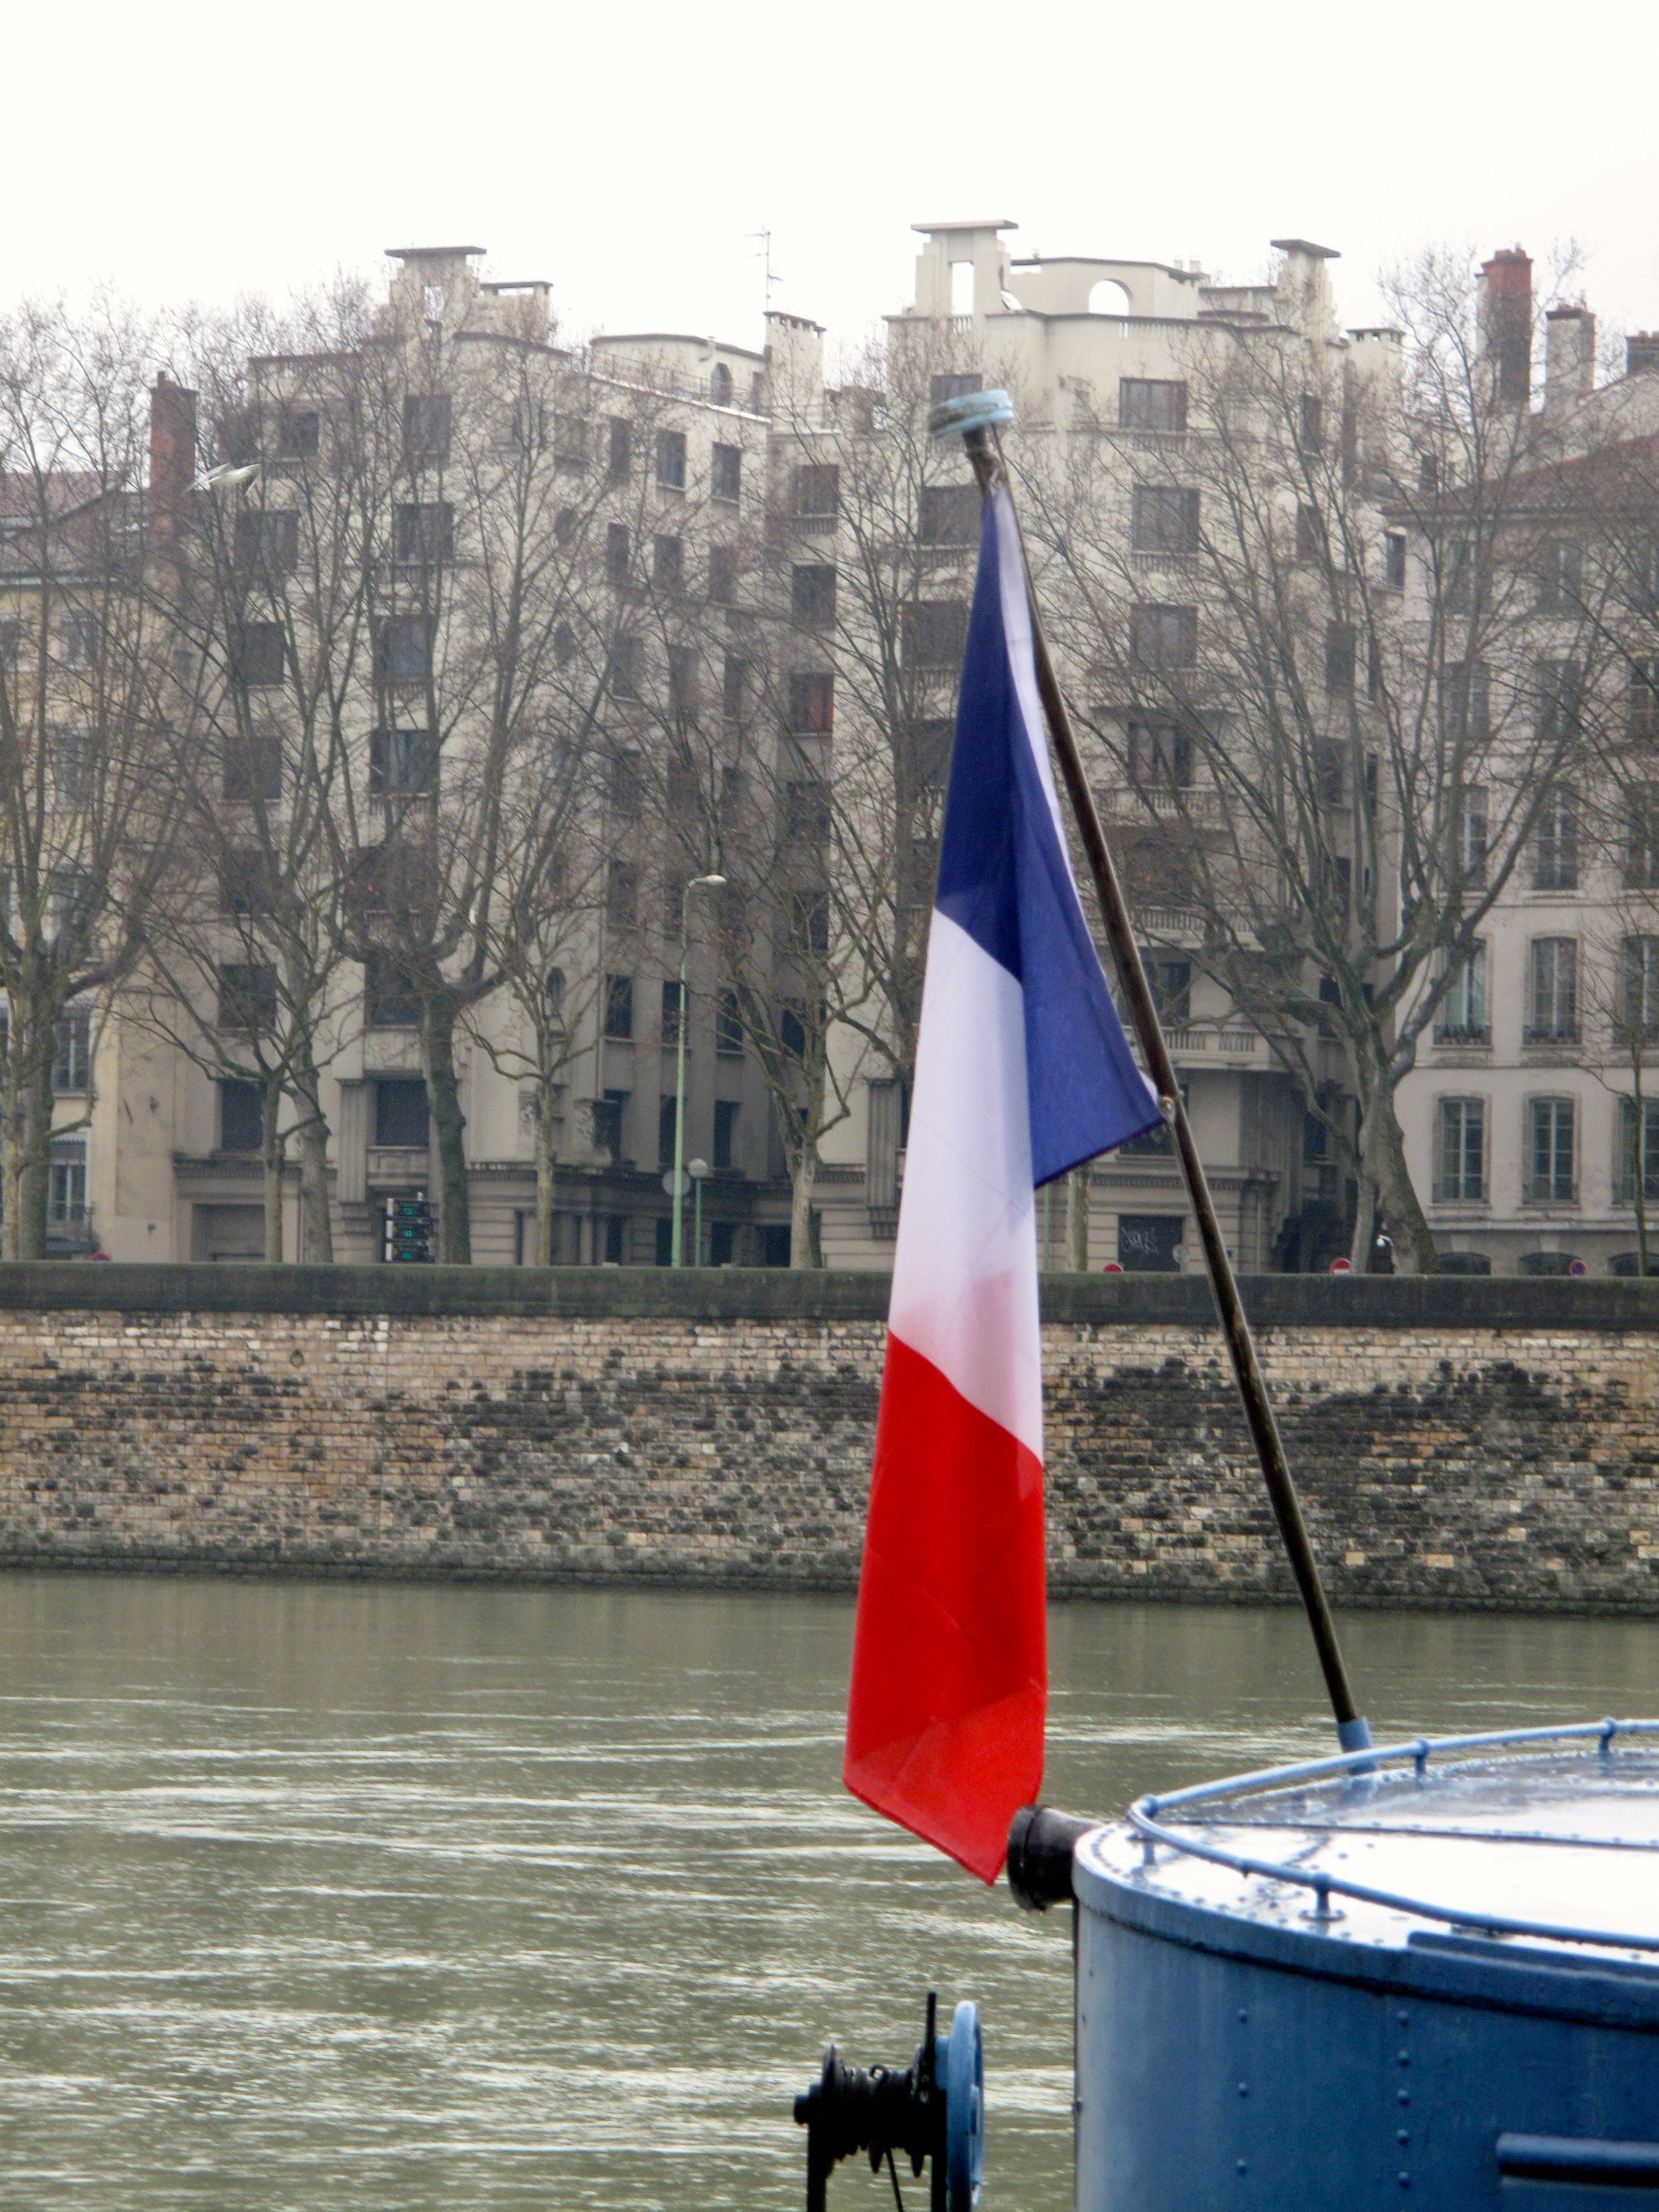 French flag on a bateaux in the Rhône river.